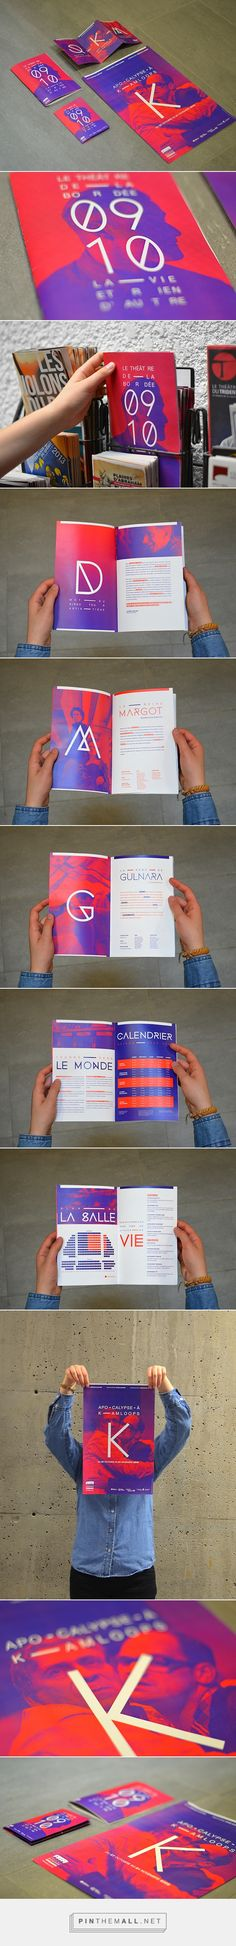 Théâtre de la Bordée on Behance - created via http://pinthemall.net